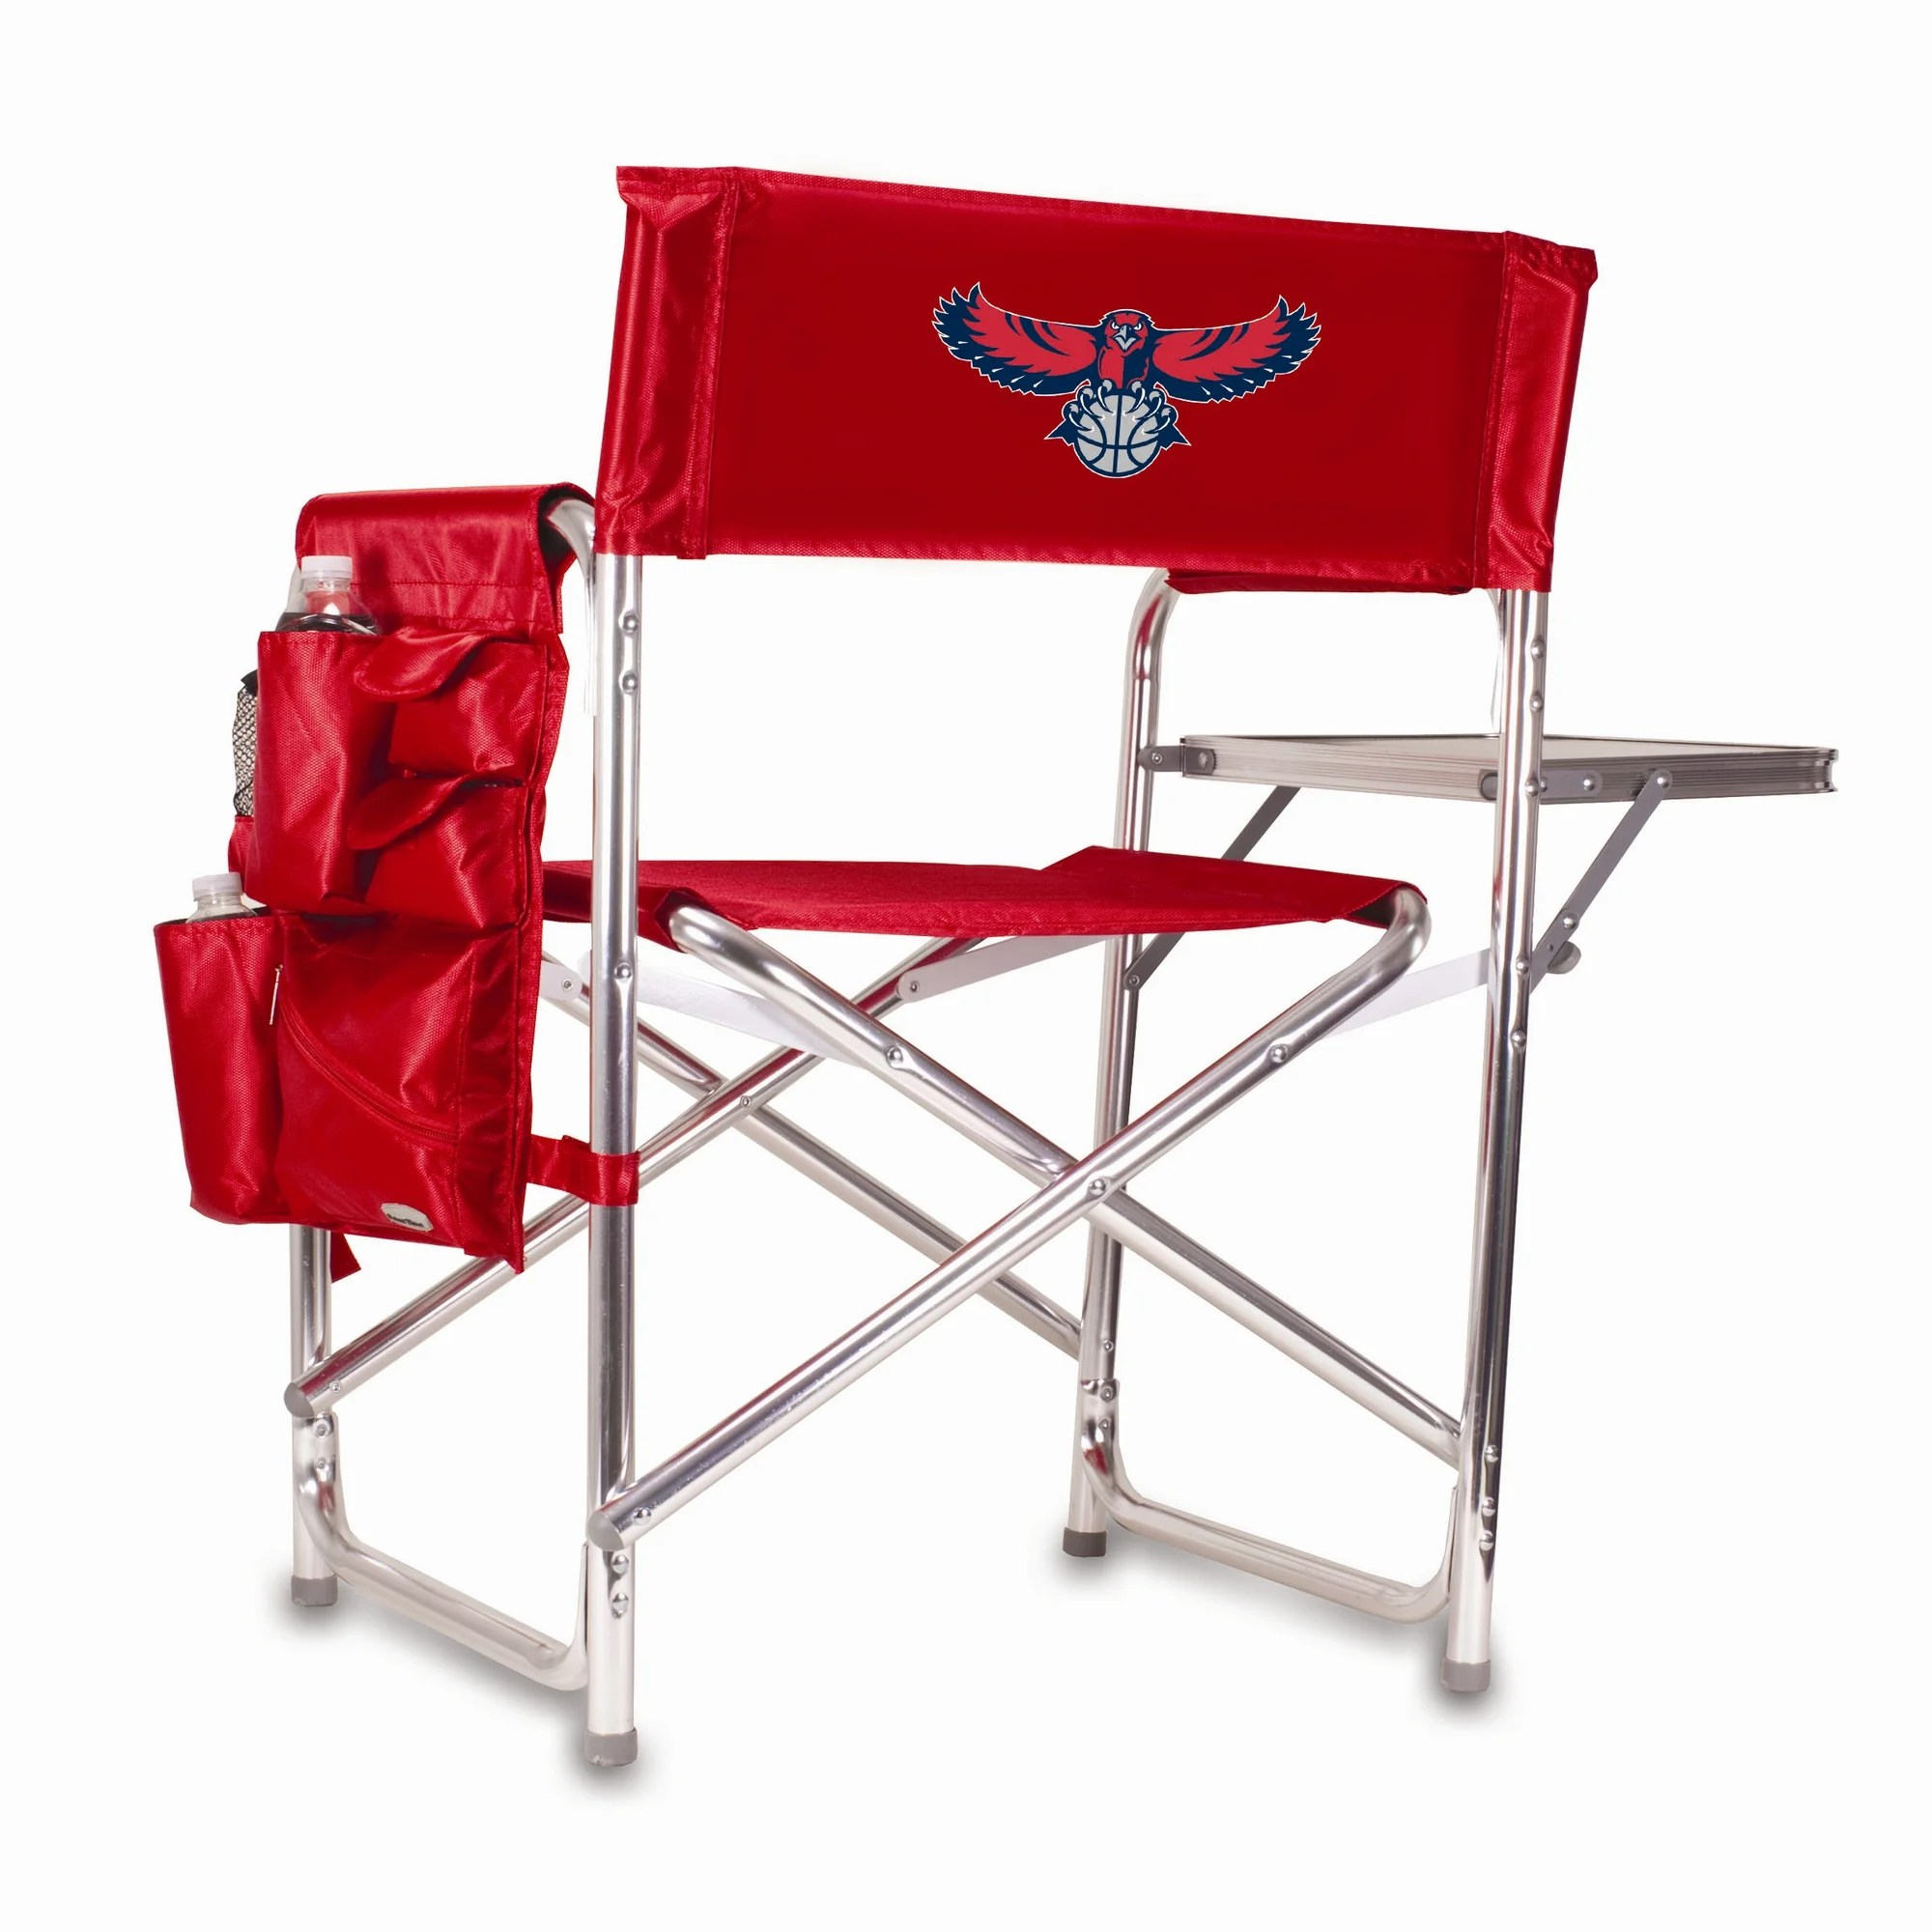 Picnic Time Sports Chair Picnic Time Nba Sports Chair And Reviews Wayfair